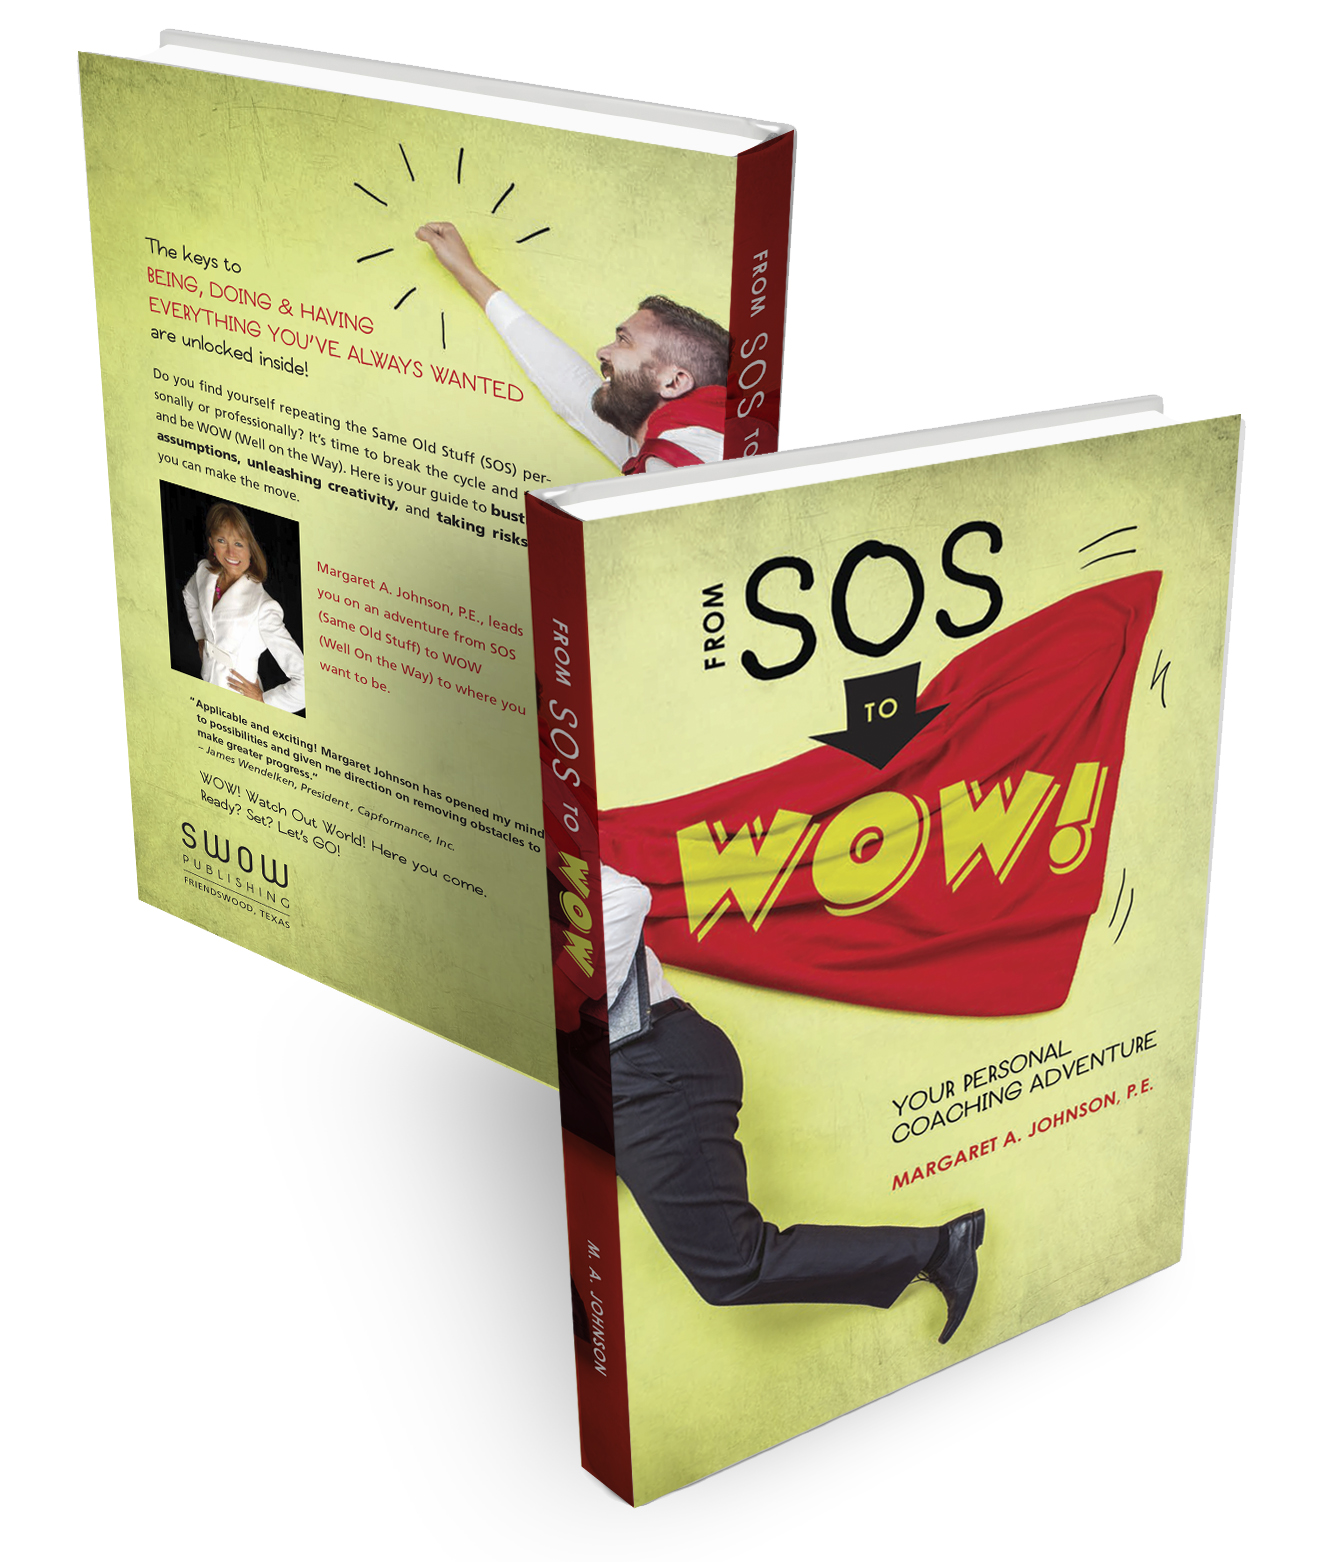 From SOS to WOW! Your Personal Coaching Adventure by Margaret A. Johnson, PE